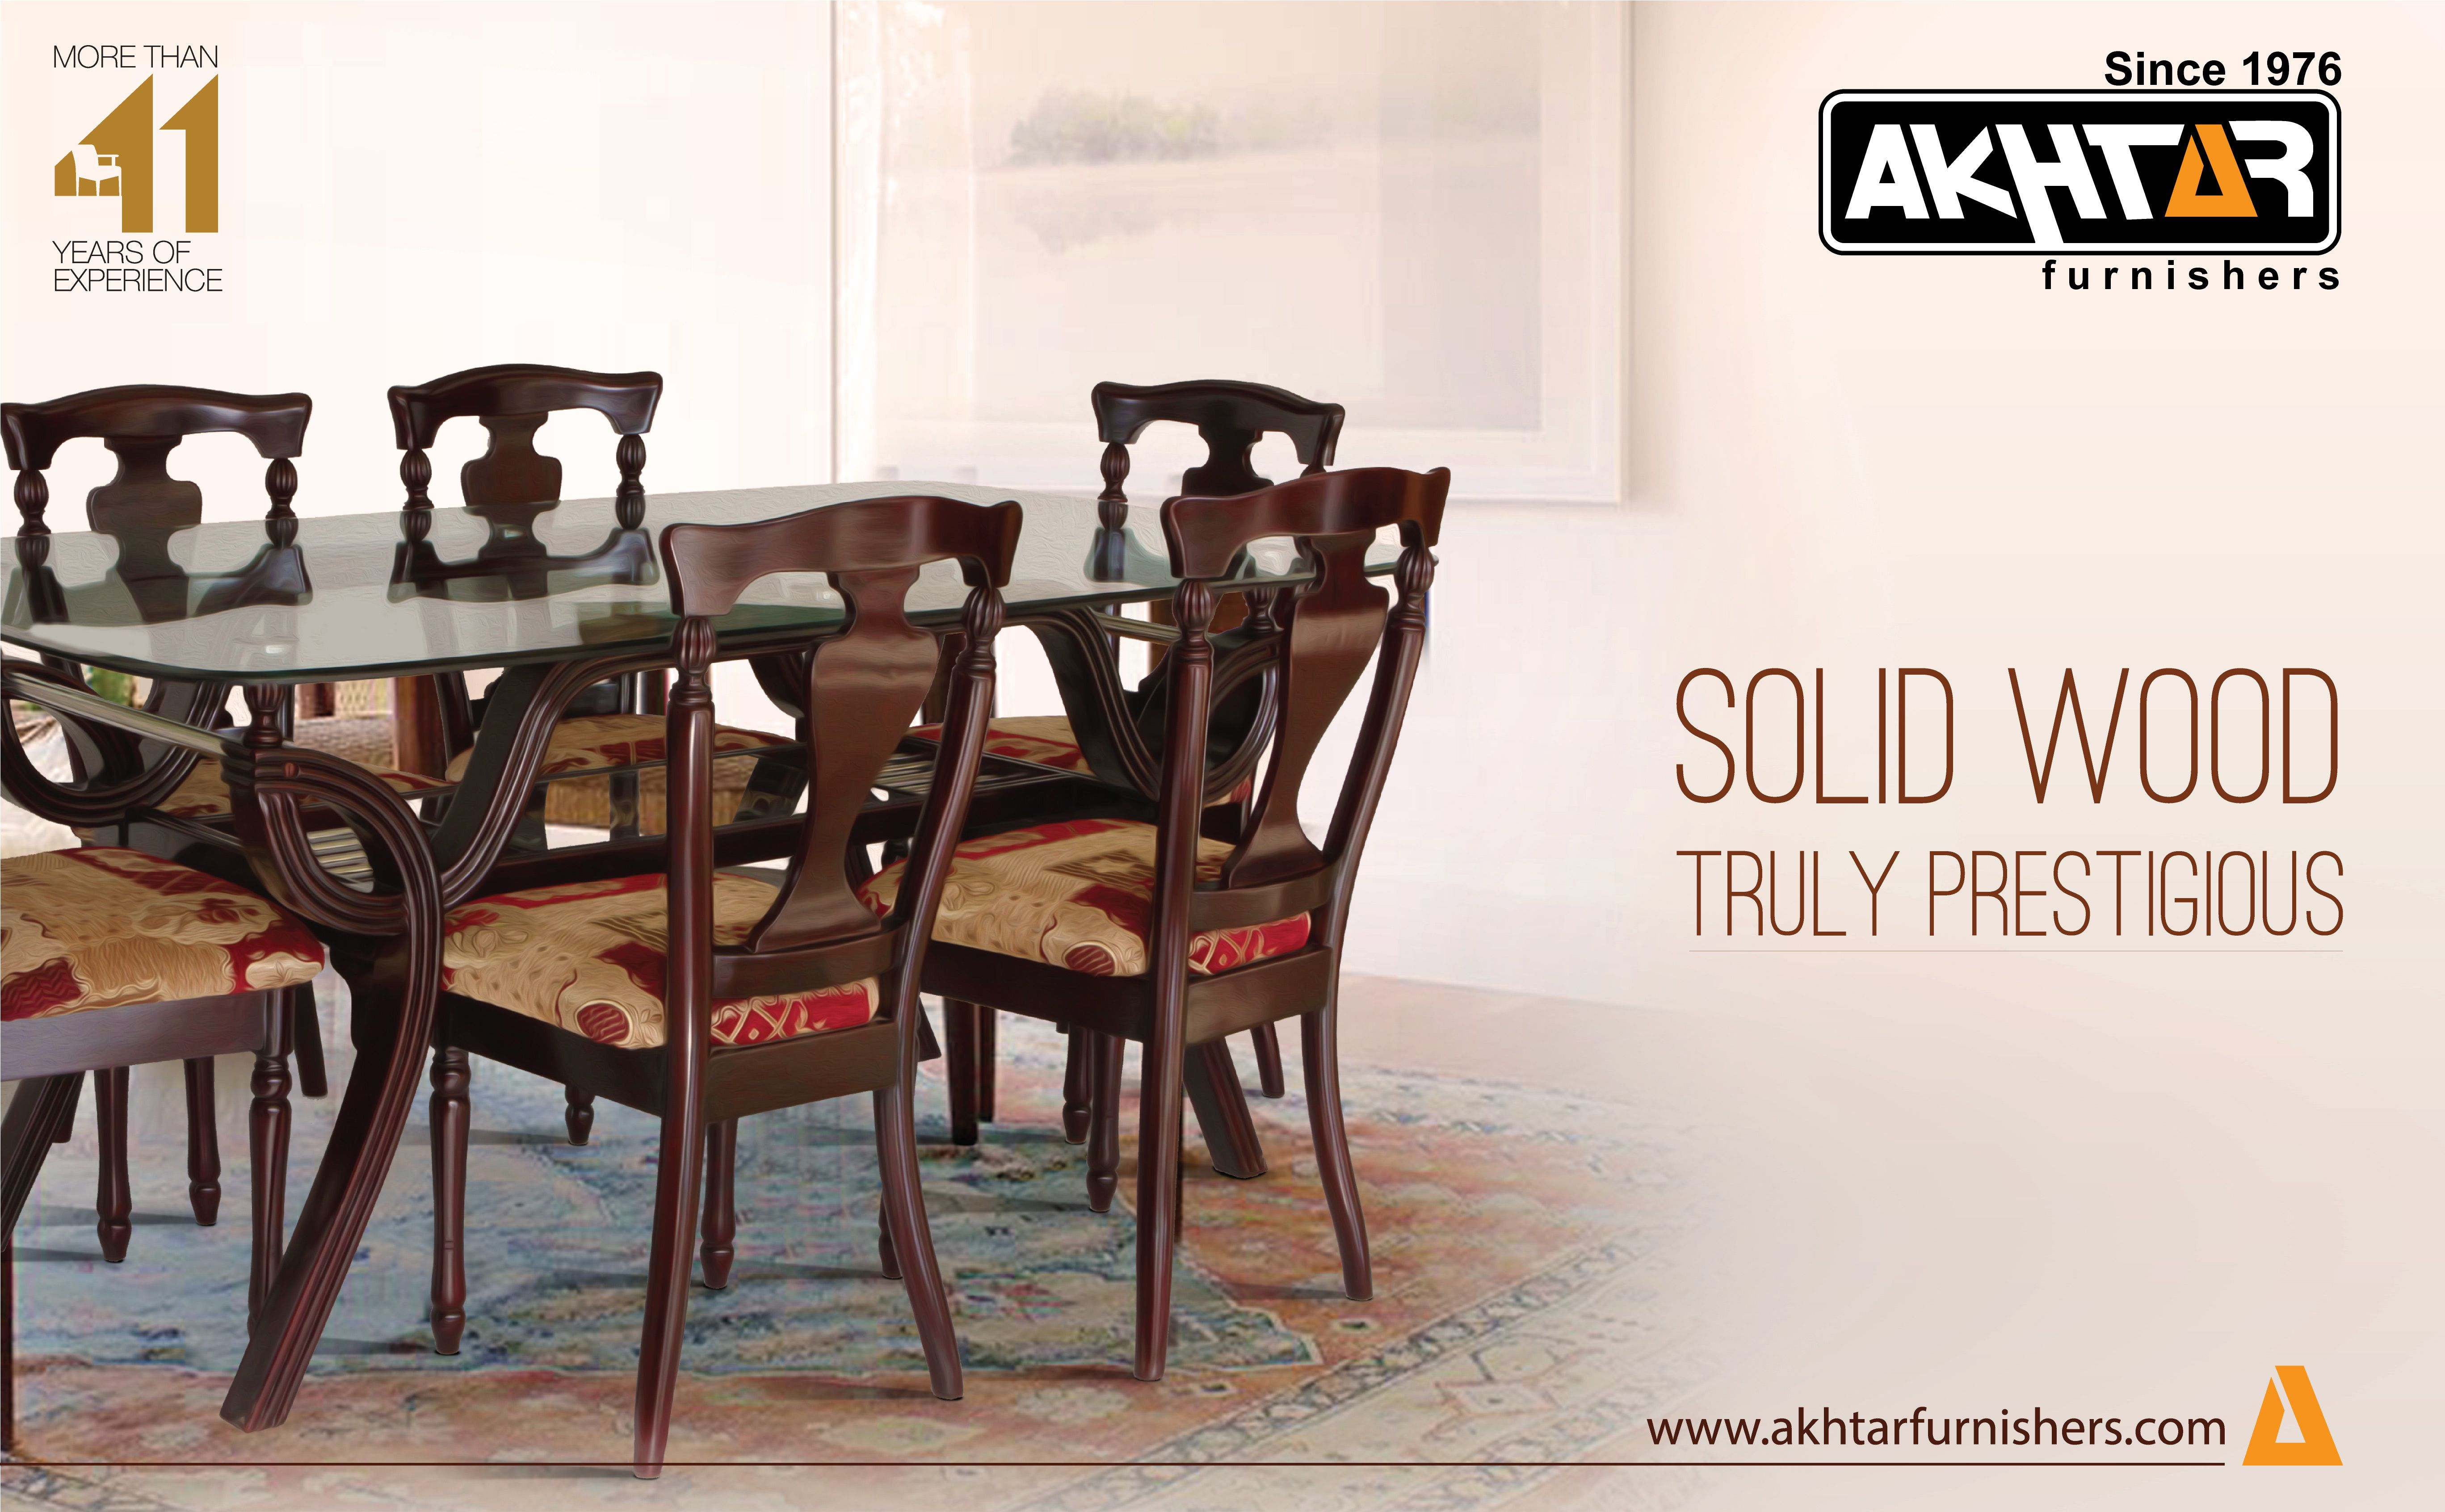 Pin By Akhtar Group On Solid Wood Truly Prestigious Home Furniture Solid Wood Home Decor